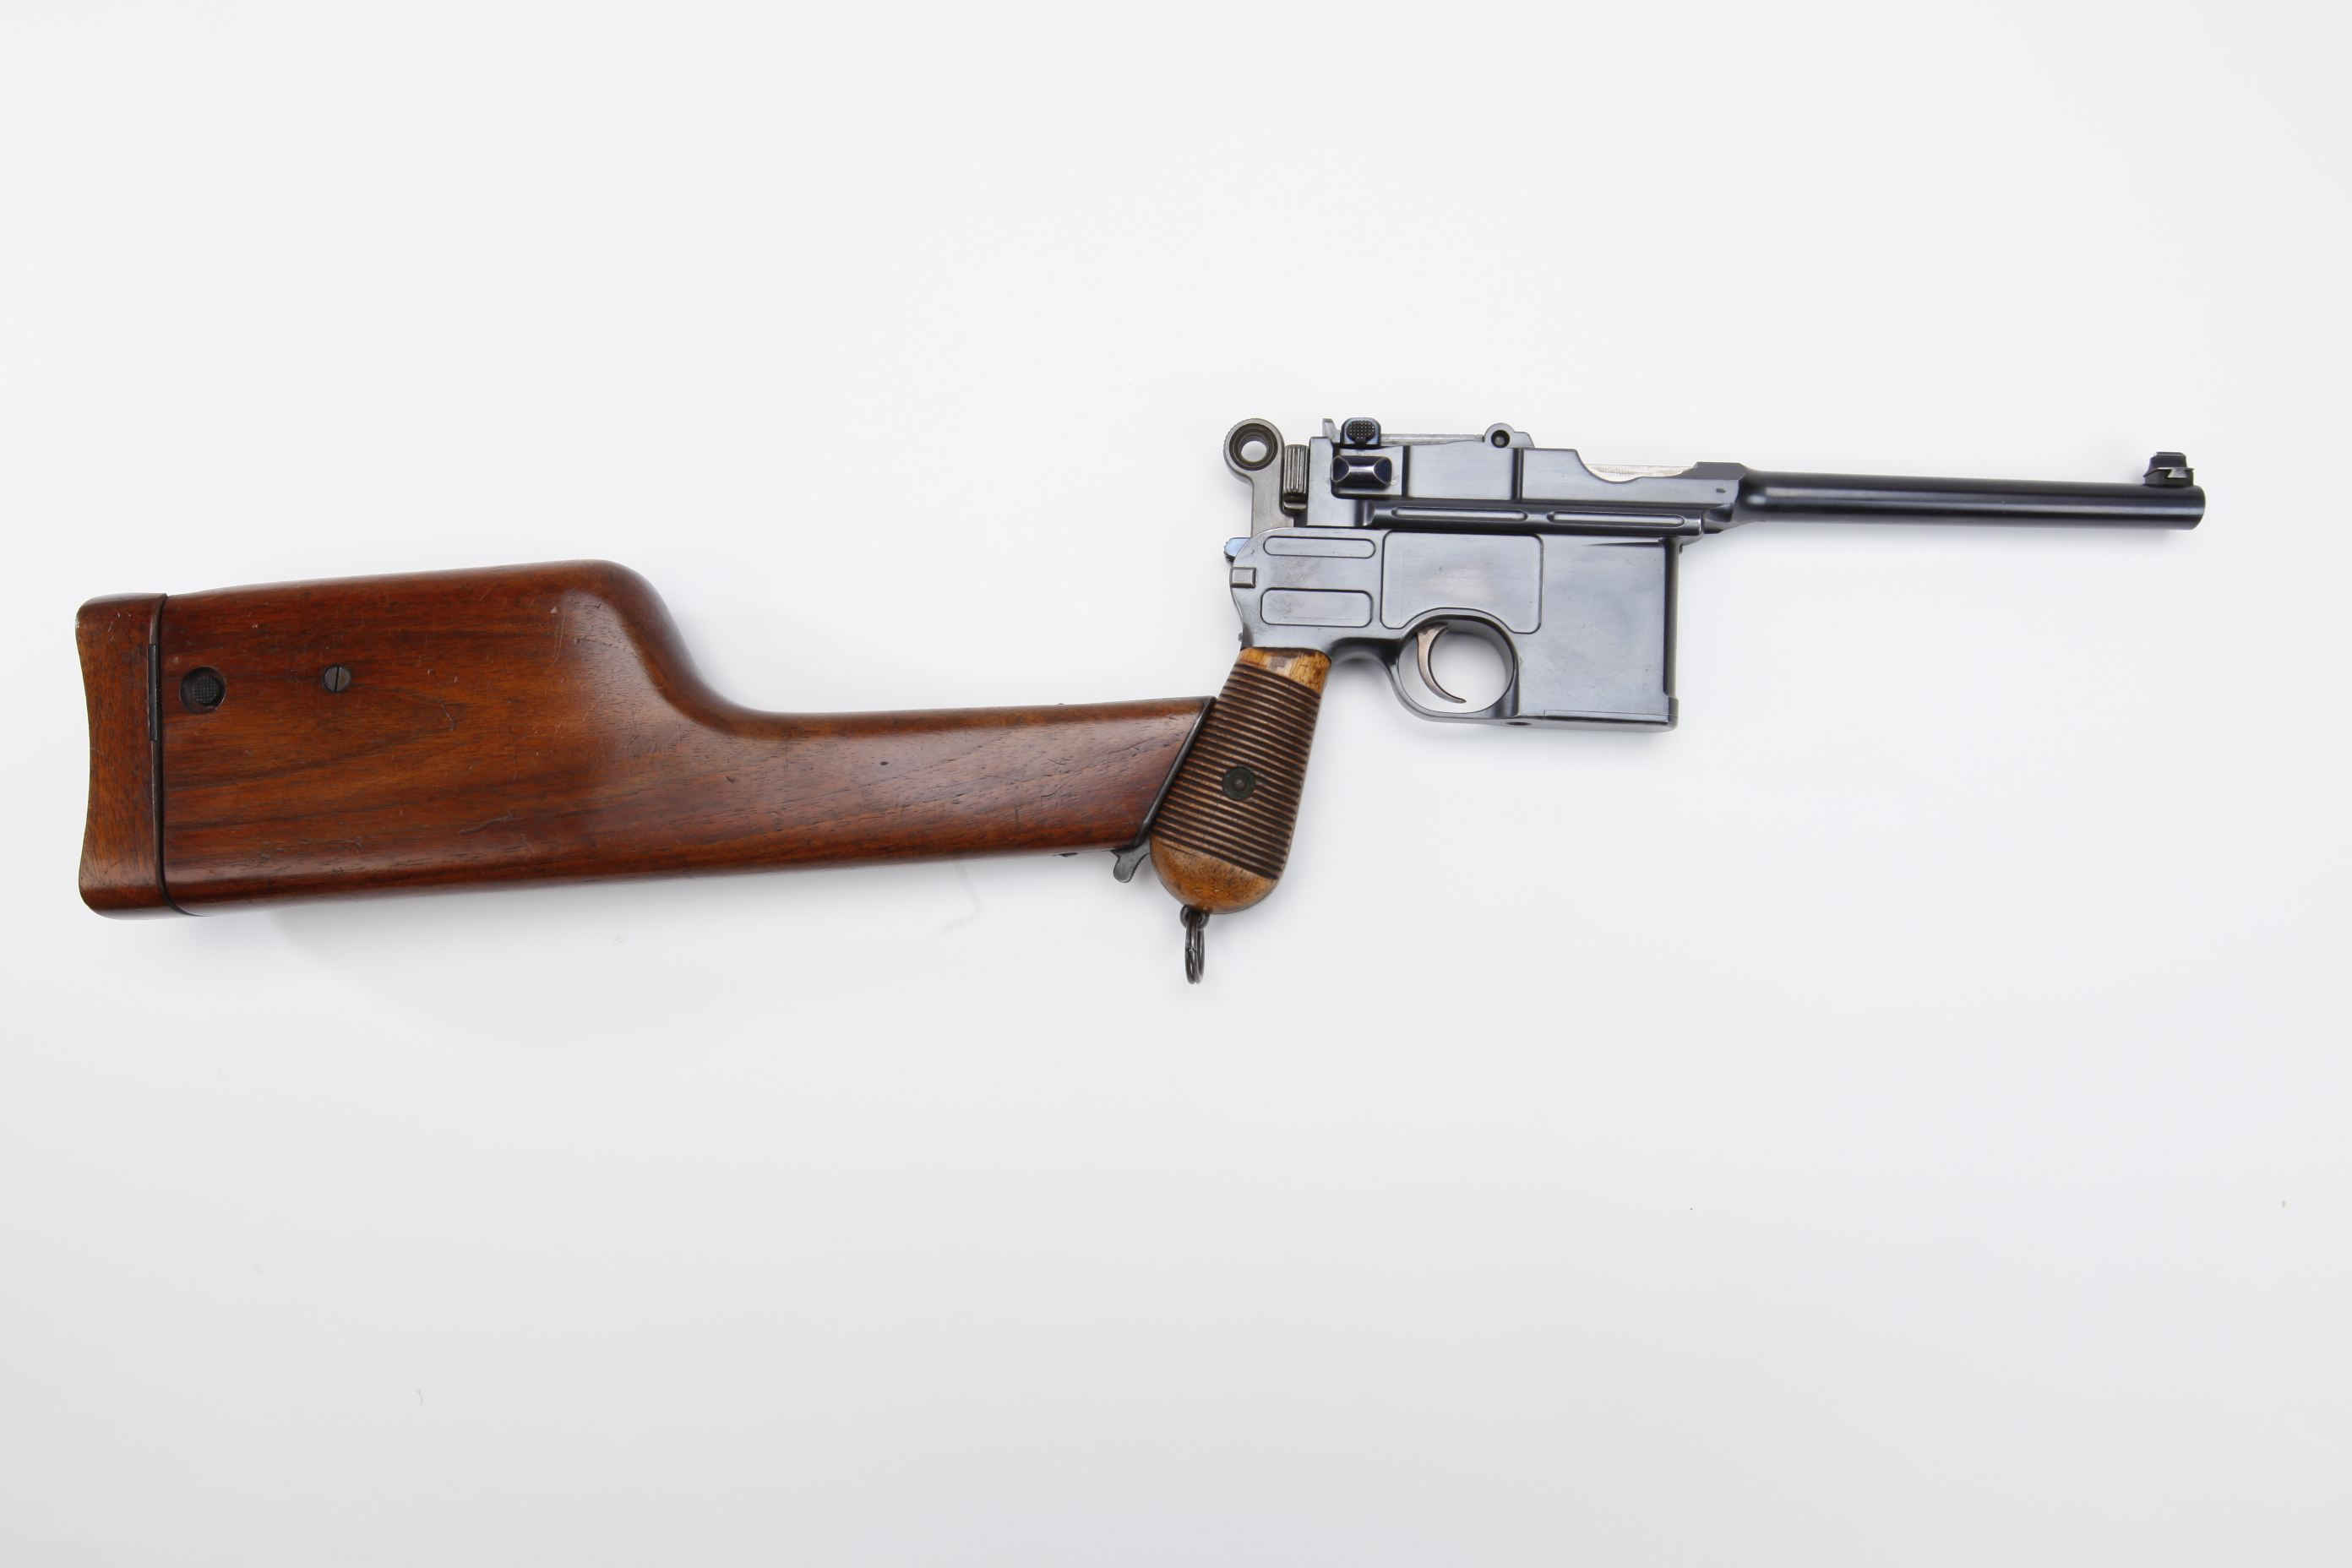 Mauser Model 1896 Broomhandle Semi Automatic Pistol